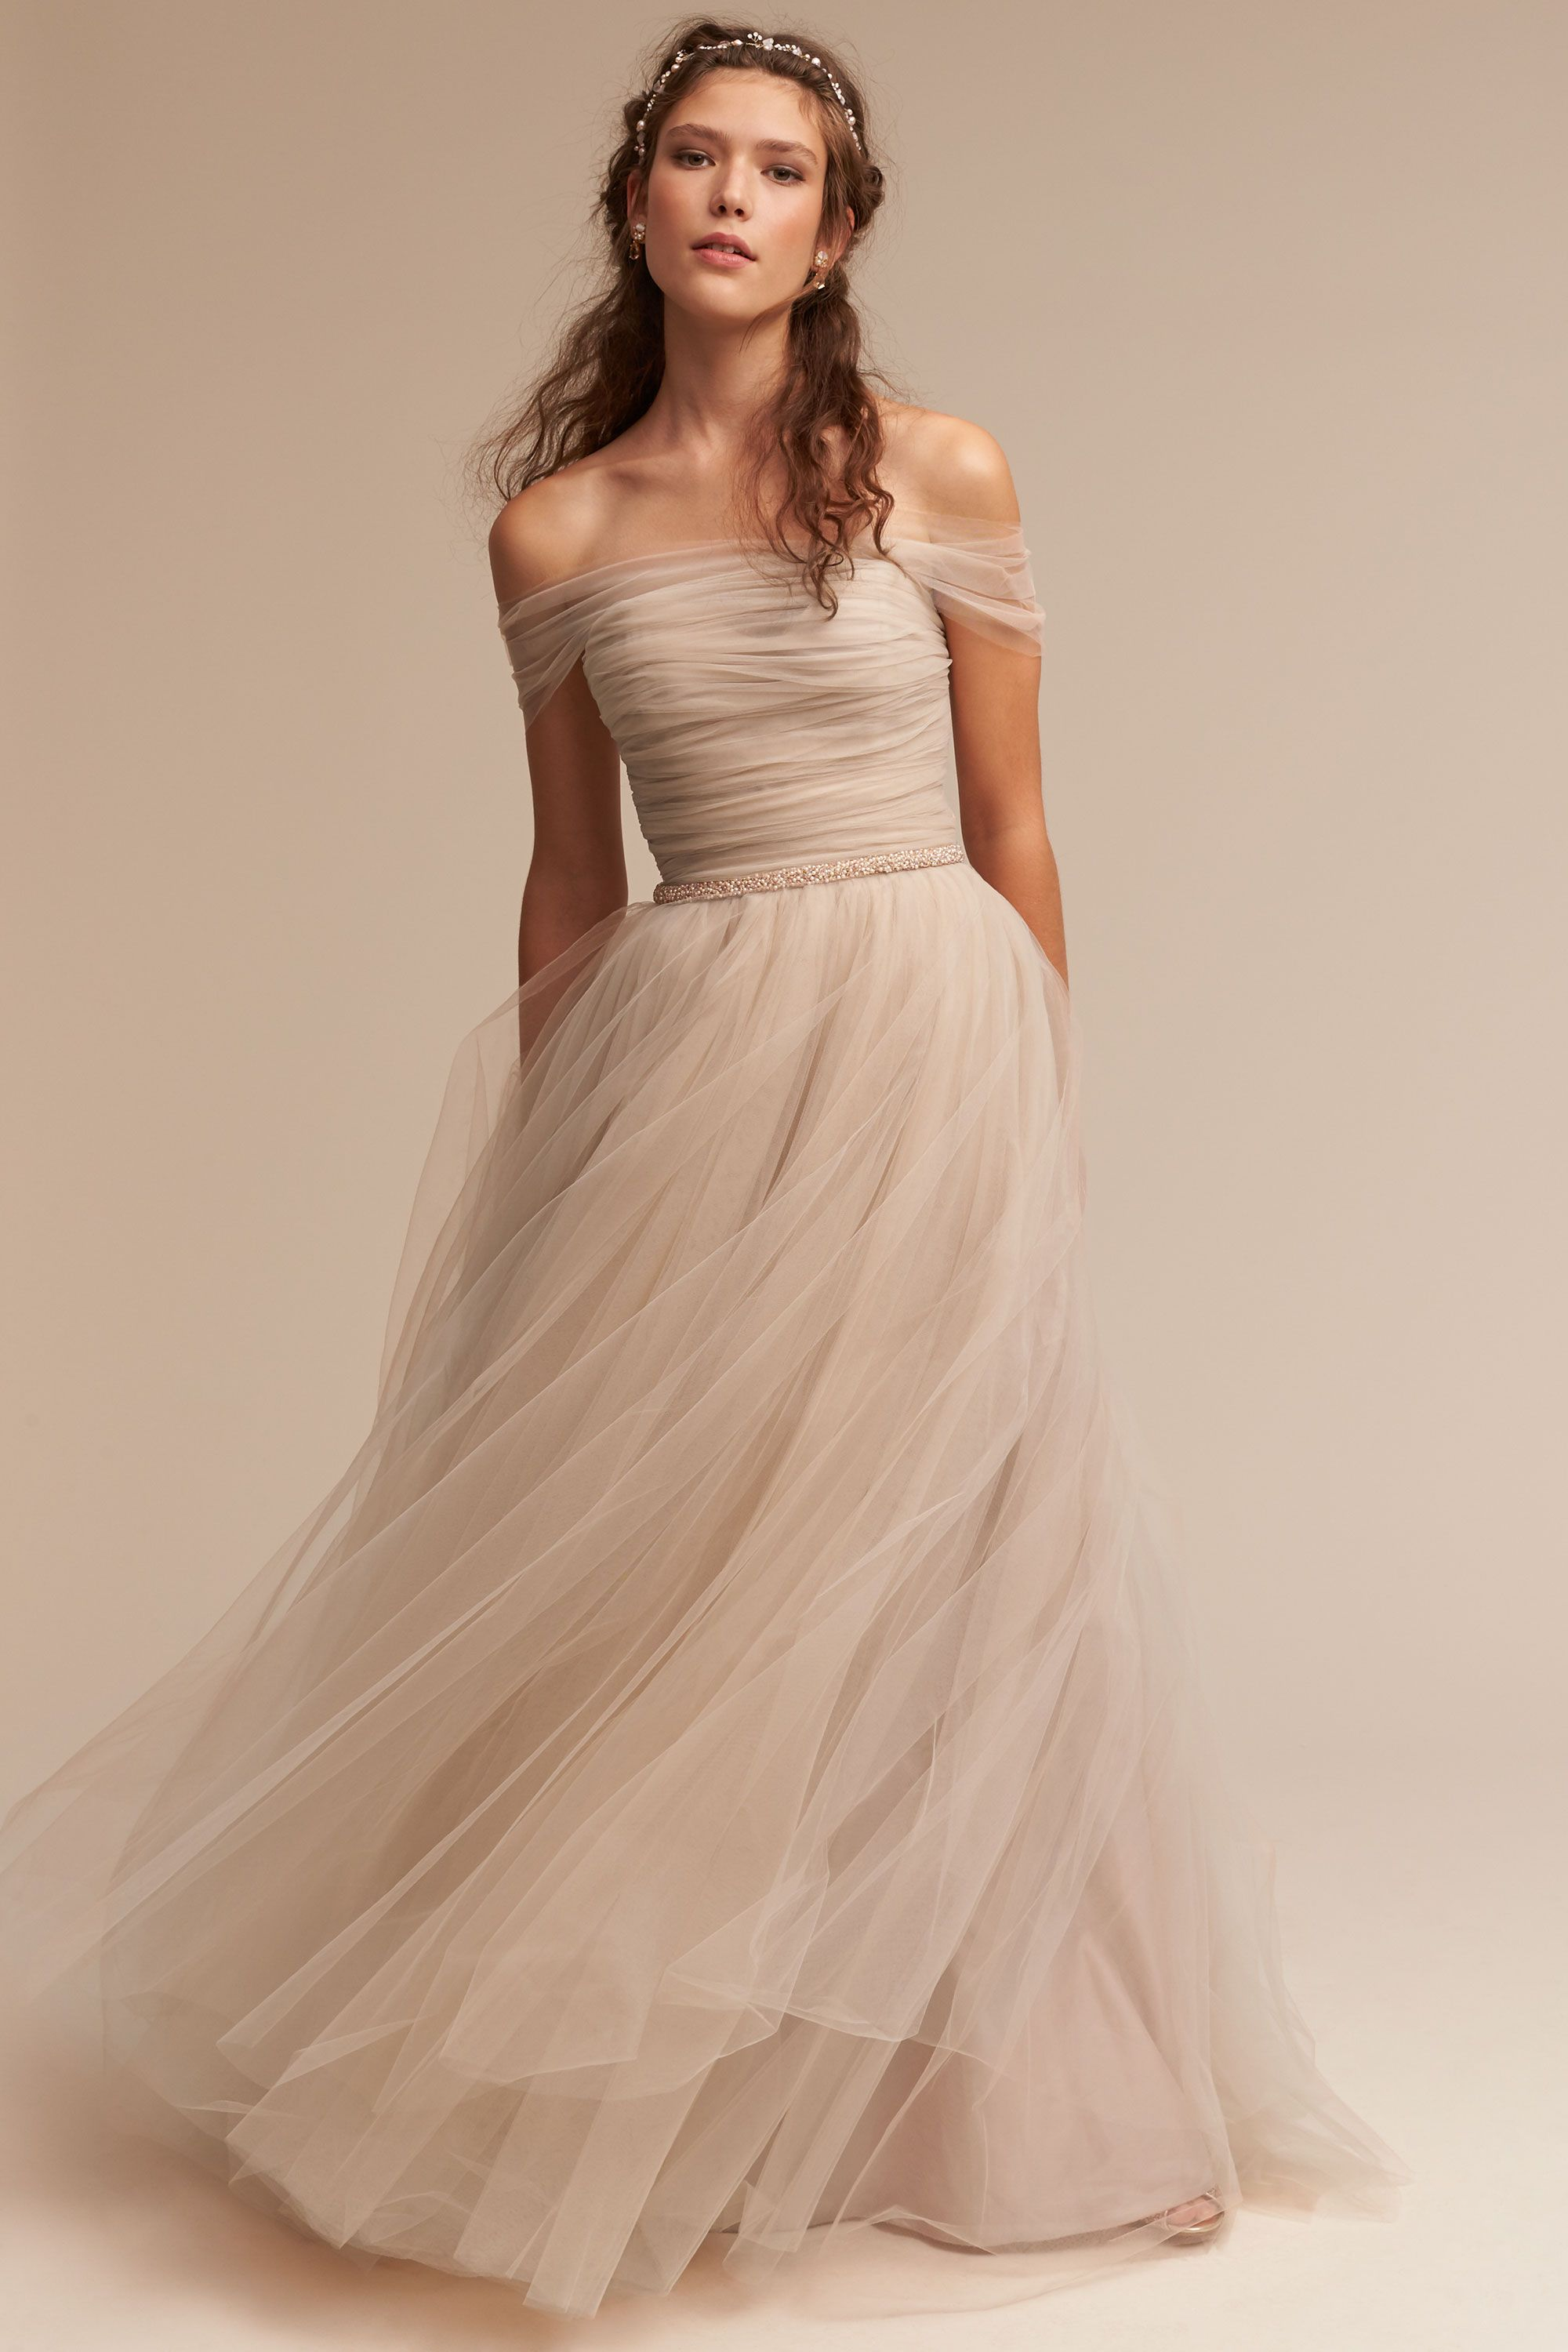 Dreamy BHLDN Wedding Dresses - Ramona Gown